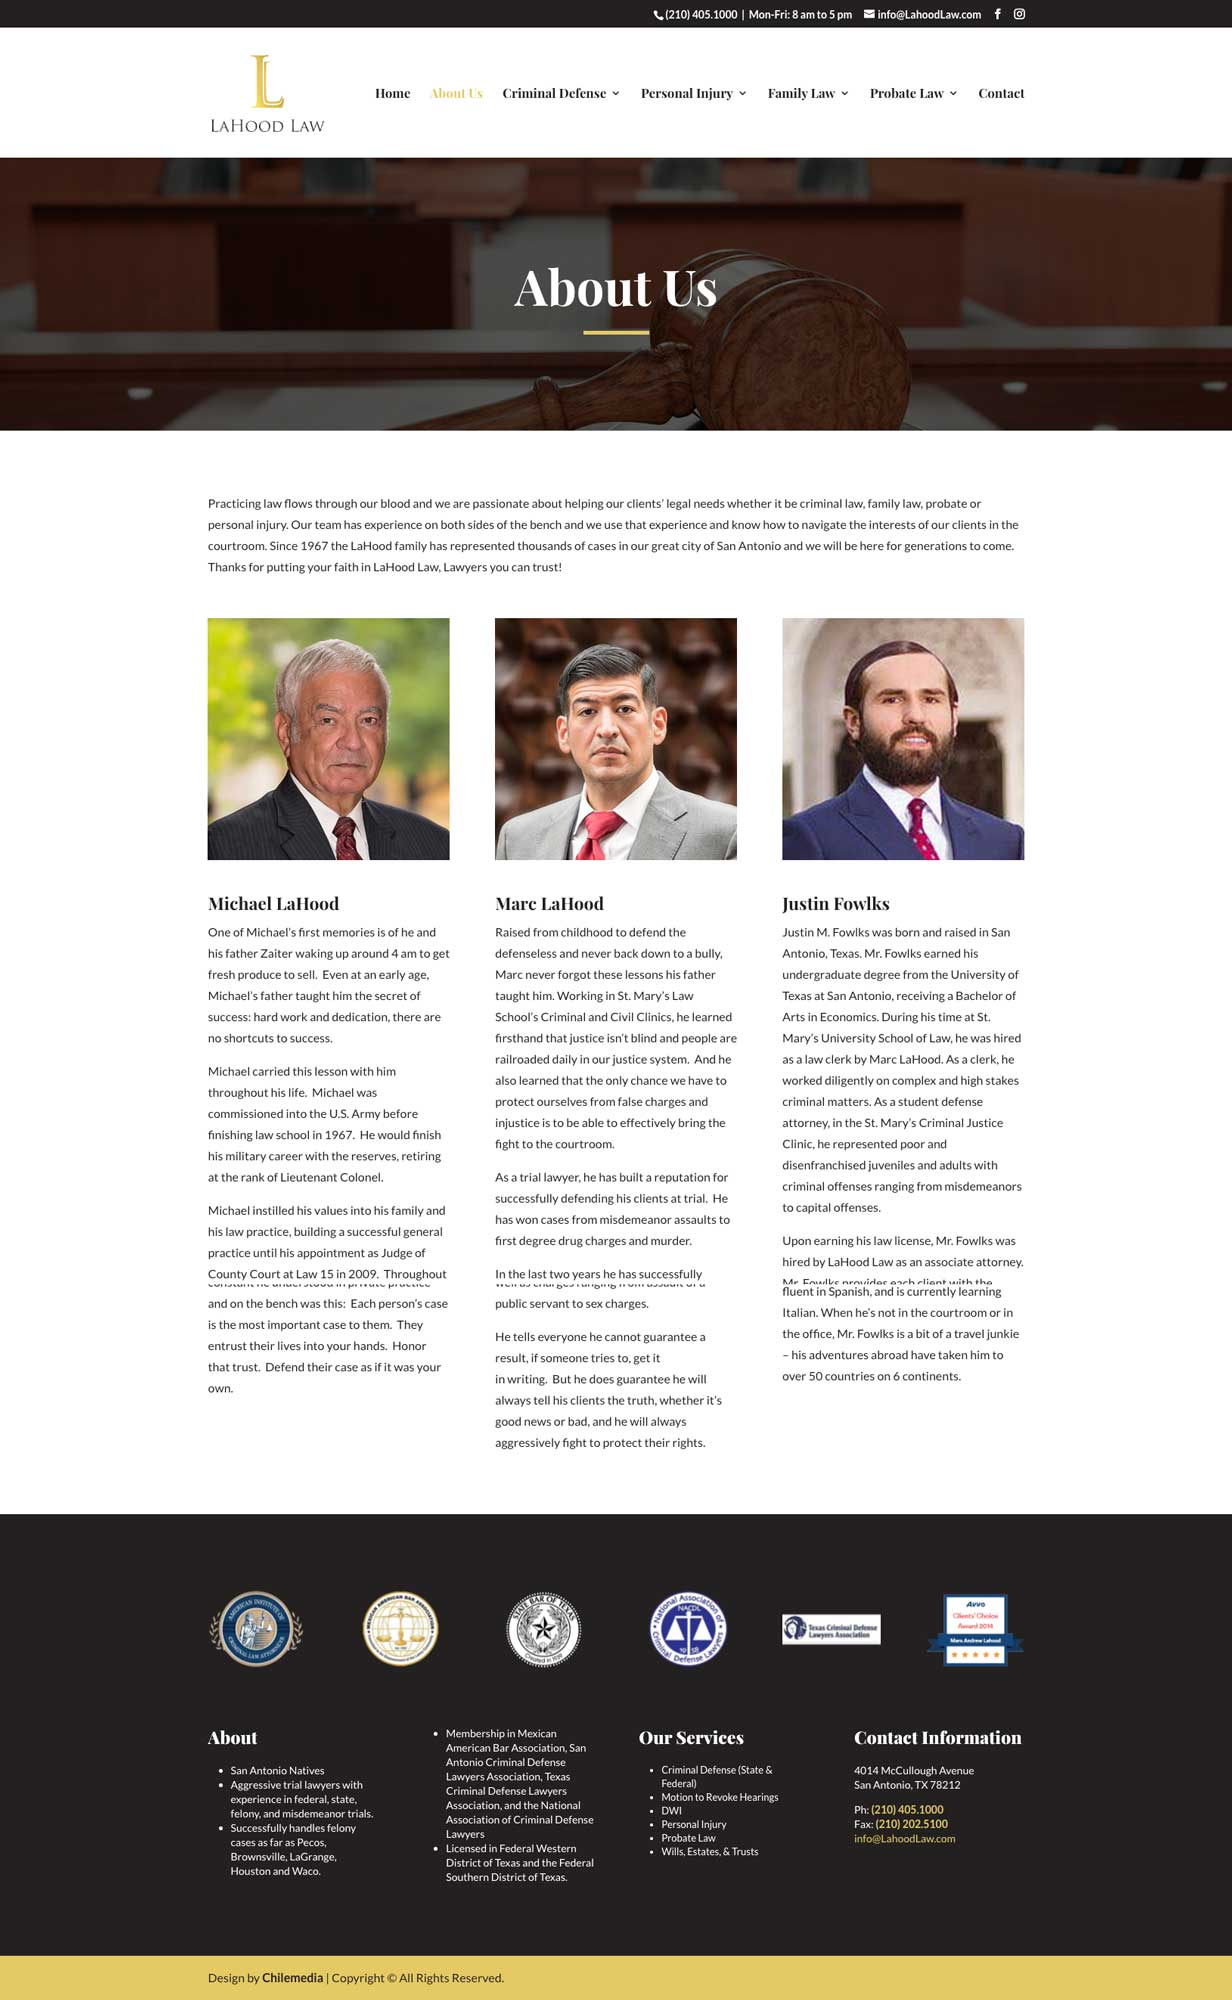 lahood law about us webpage